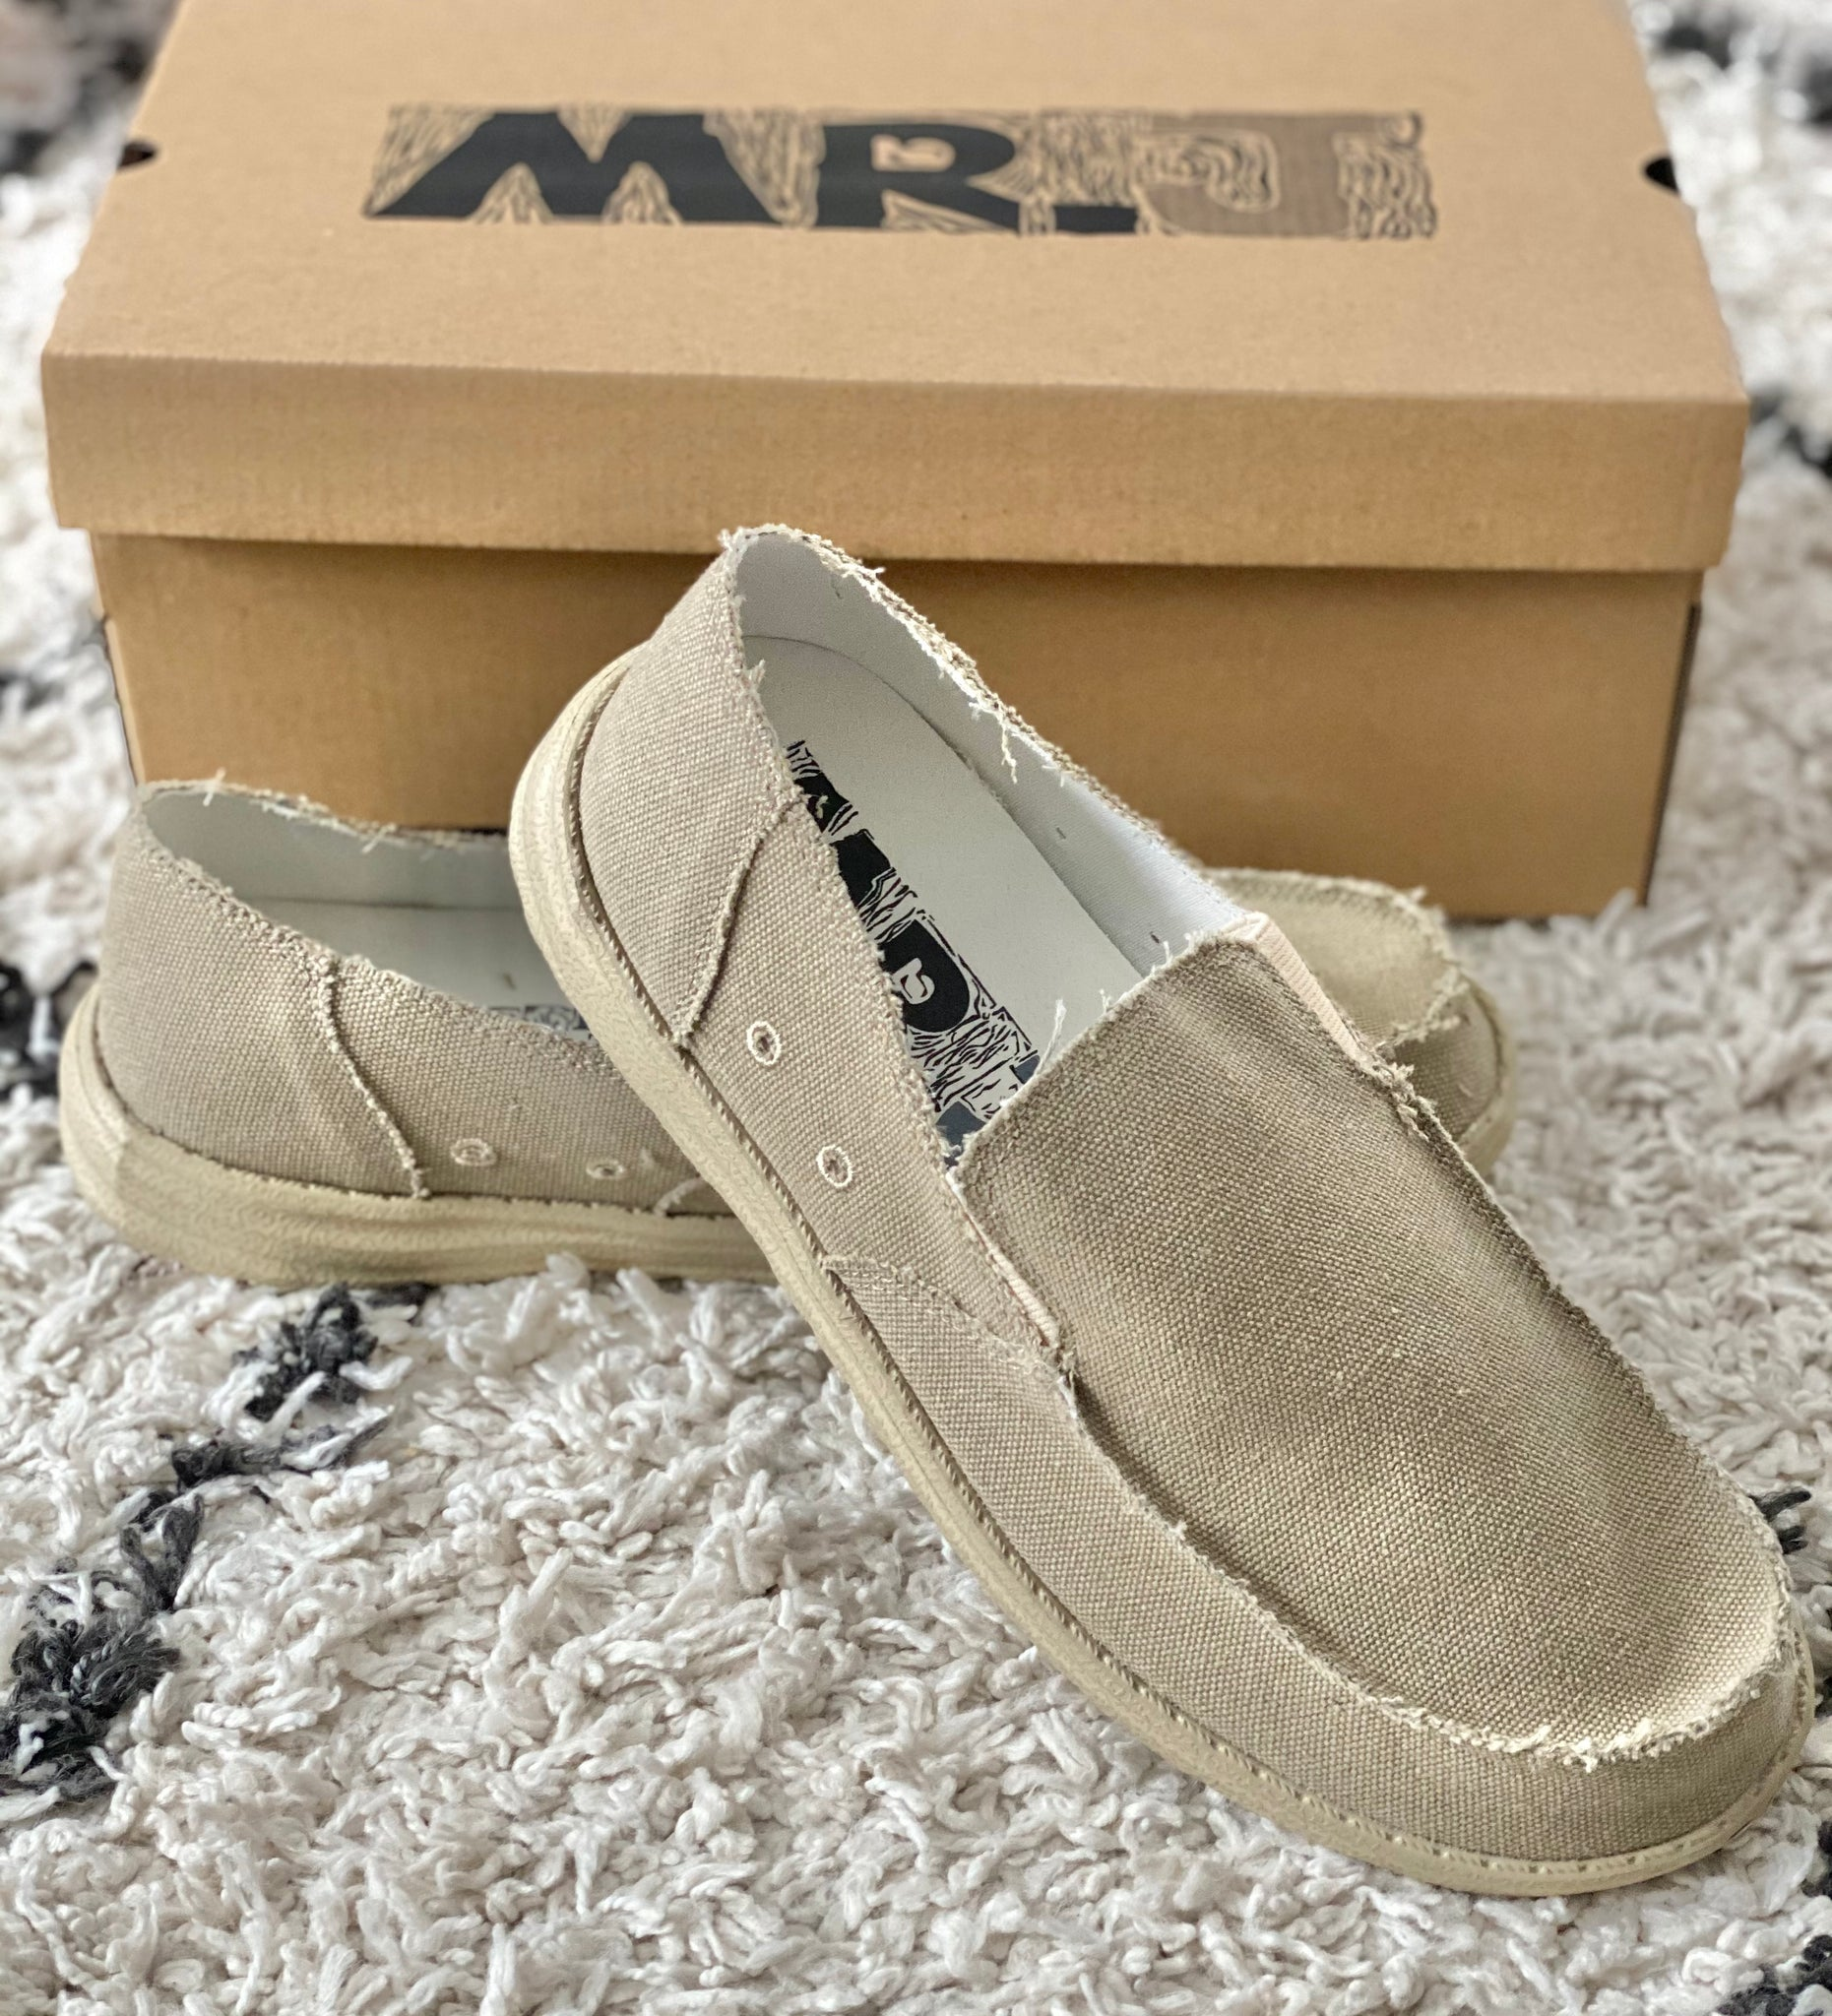 Mr. J Men's Boat Shoes- Sand